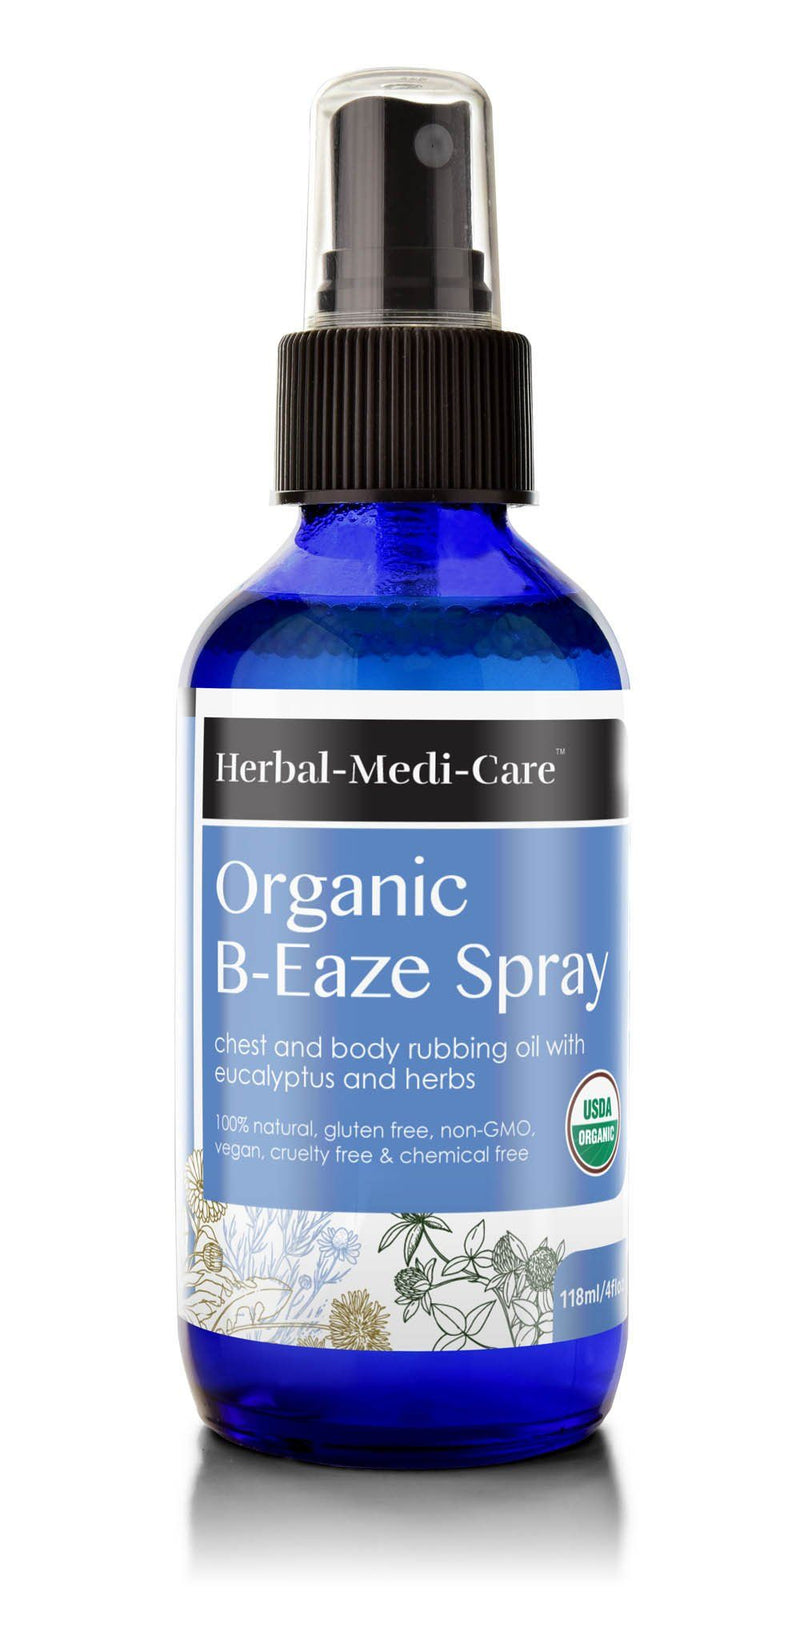 Herbal-Medi-Care Organic B-Eaze (Congestion) Spray; 3.38 floz - Herbal-Medi-Care Organic B-Eaze (Congestion) Spray; 3.38 floz - Herbal-Medi-Care Organic B-Eaze (Congestion) Spray; 3.38 floz